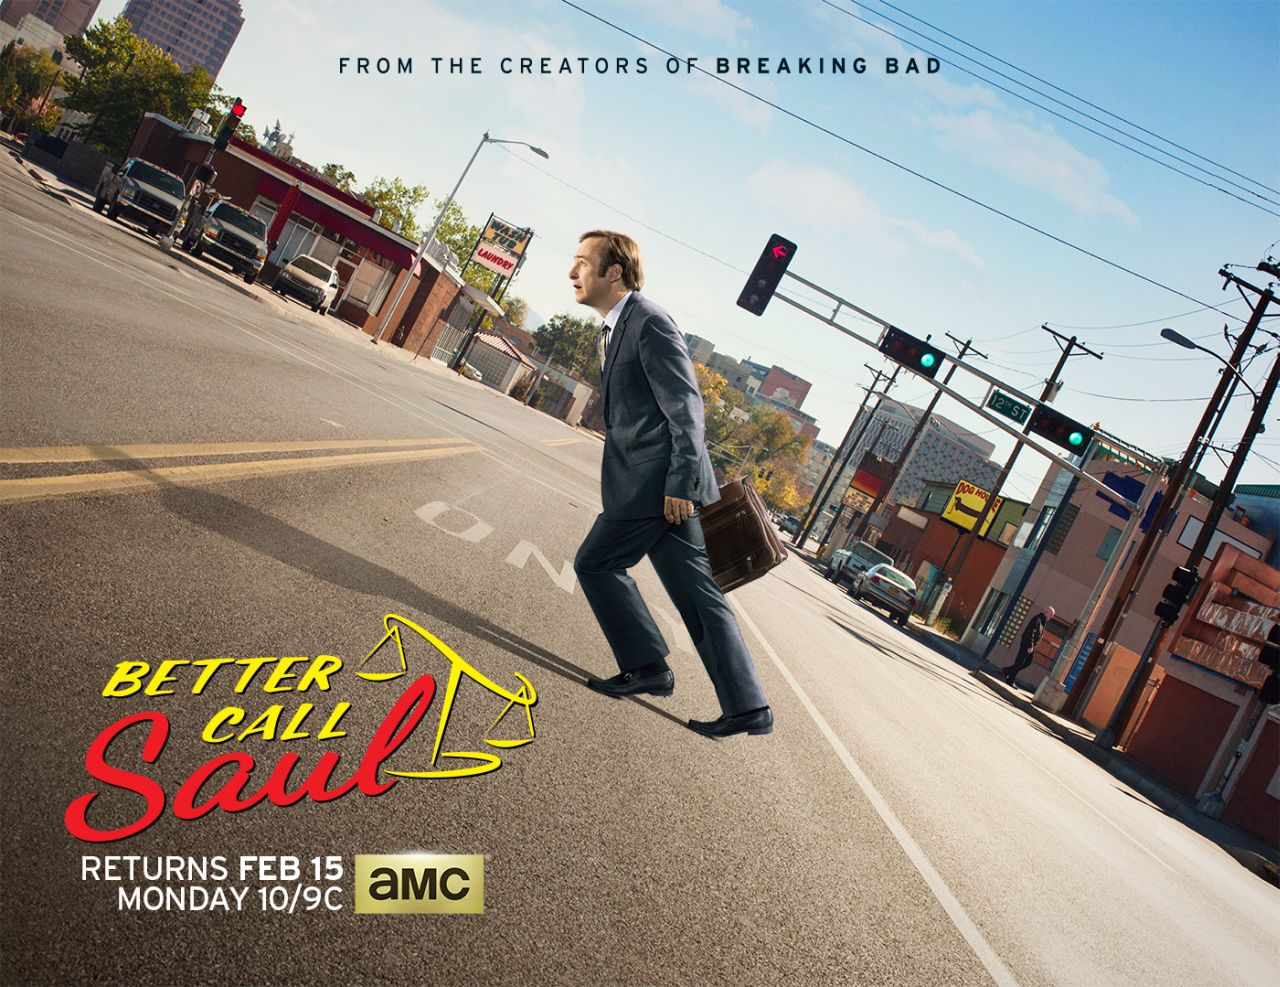 Better Call Saul Season 3 Episode 4 480p WEB-DL 150MB